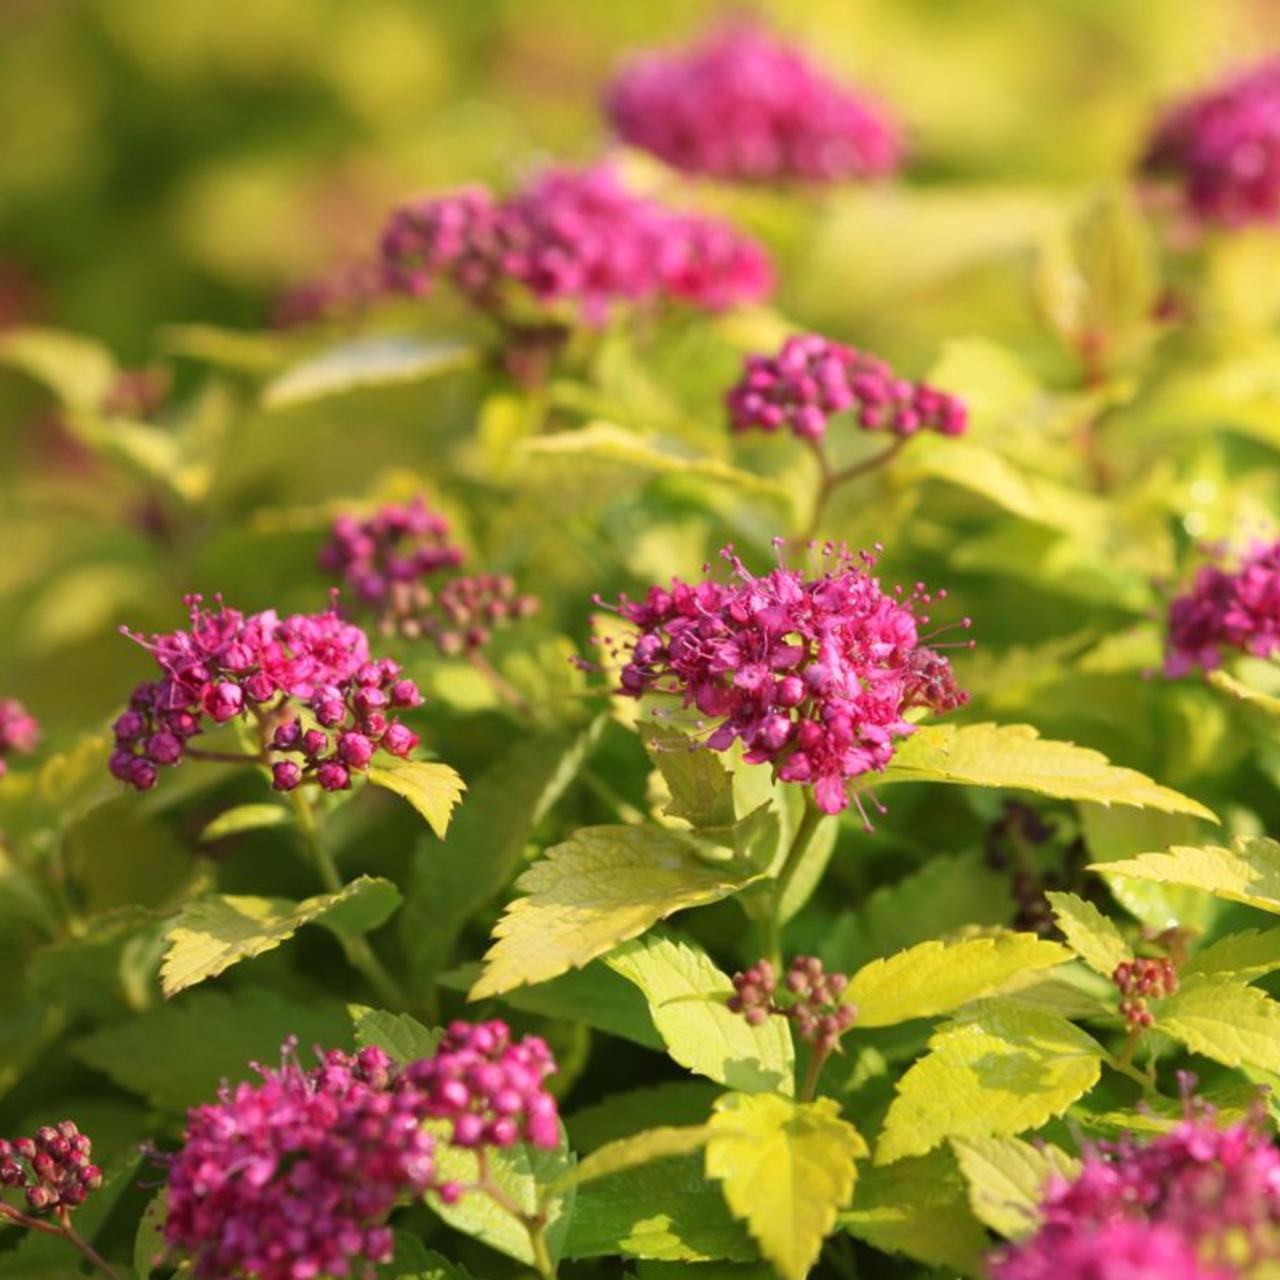 Spiraea japonica 'Double Play Gold' plant